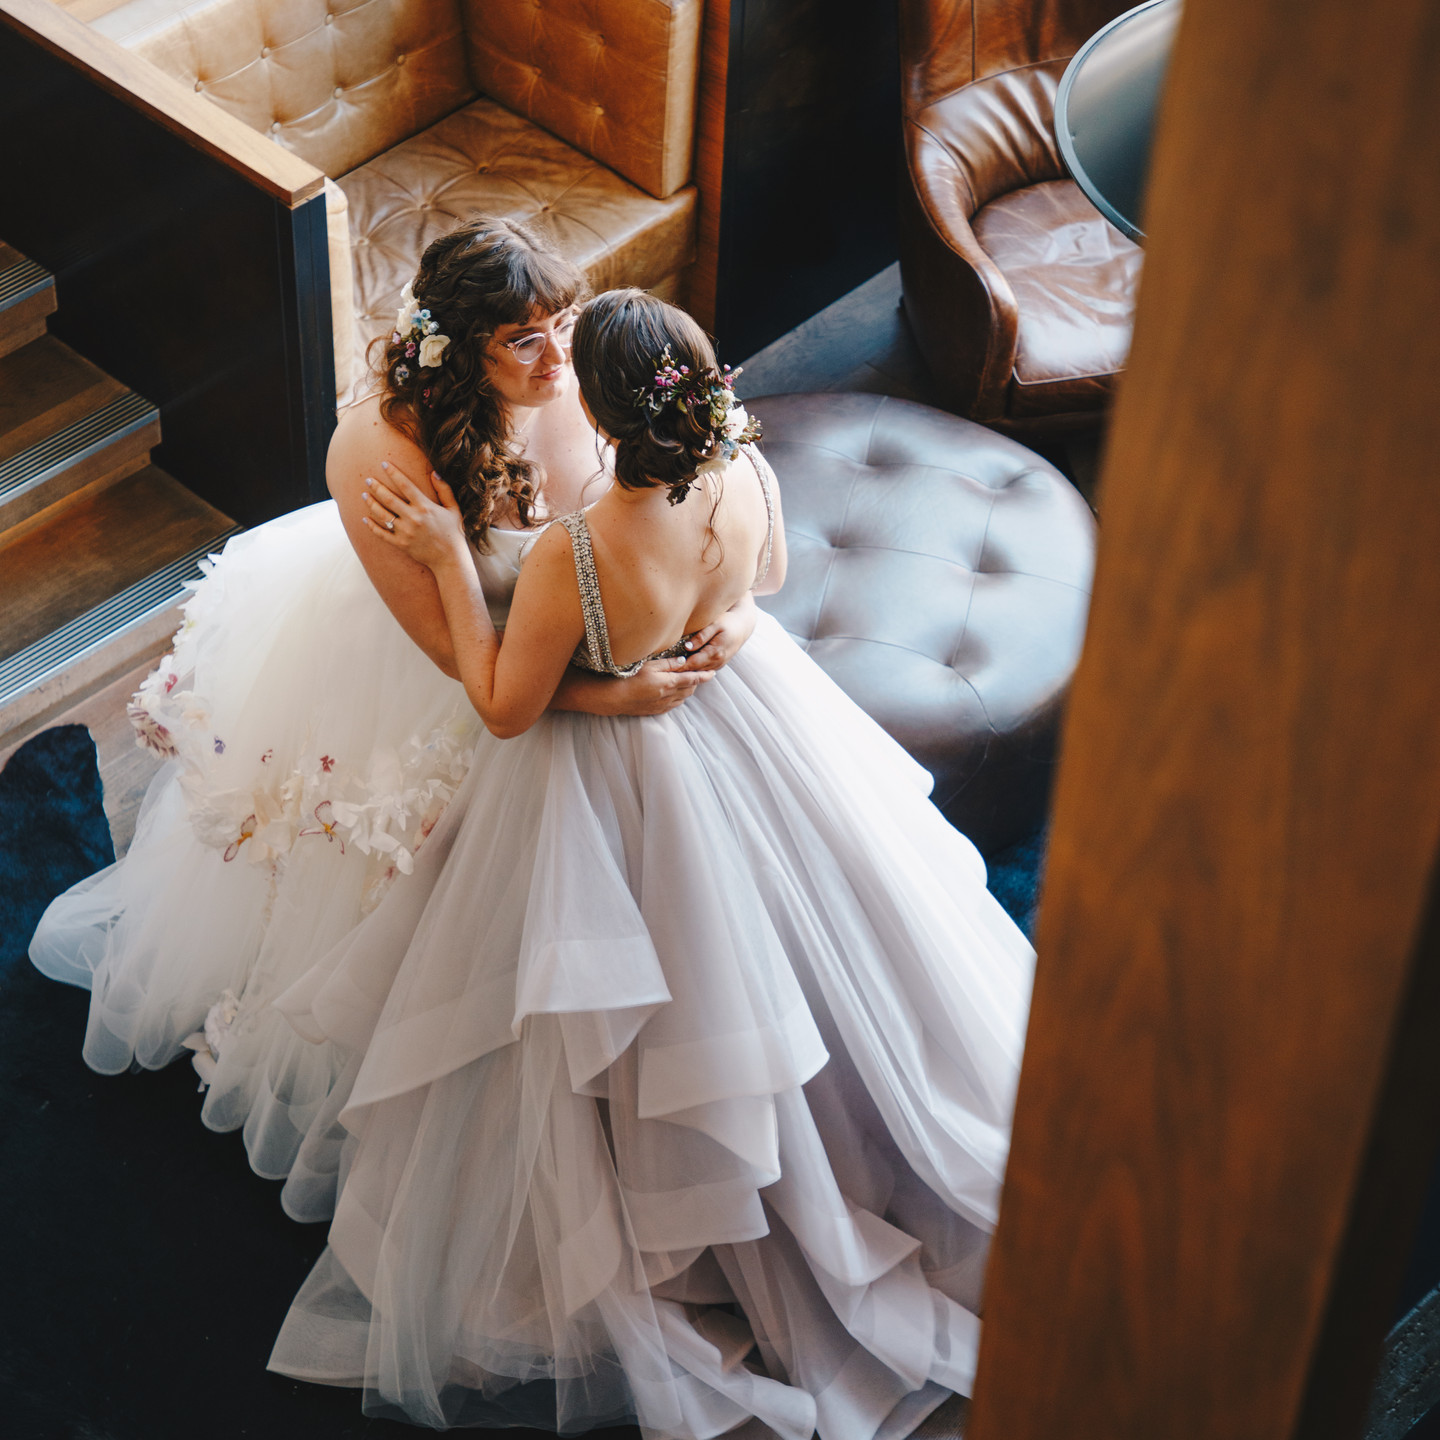 Two femme presenting queer white brides, both in dresses, one white with a playful leafy pattern in red and purple tones; the other wearing a champagne backless dress and showcasing an updo; looking into each other's eyes, they're thinking about their ceremony which will soon follow; officiated by queer officiant at Once Upon A Vow.